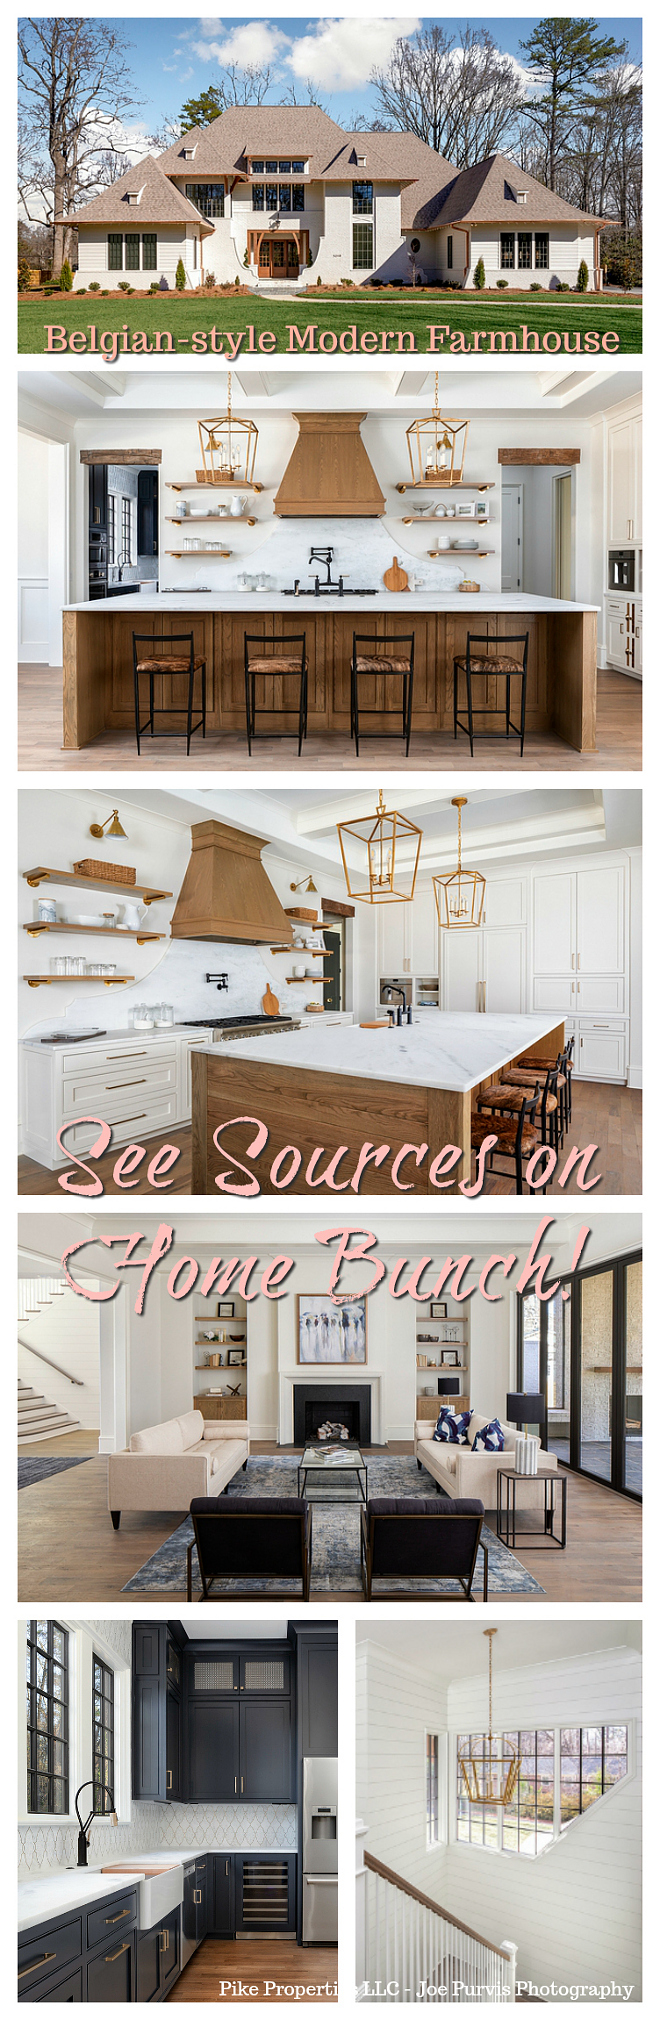 Belgian-style Modern Farmhouse #farmhouse #Belgianfarmhouse #modernfarmhouse